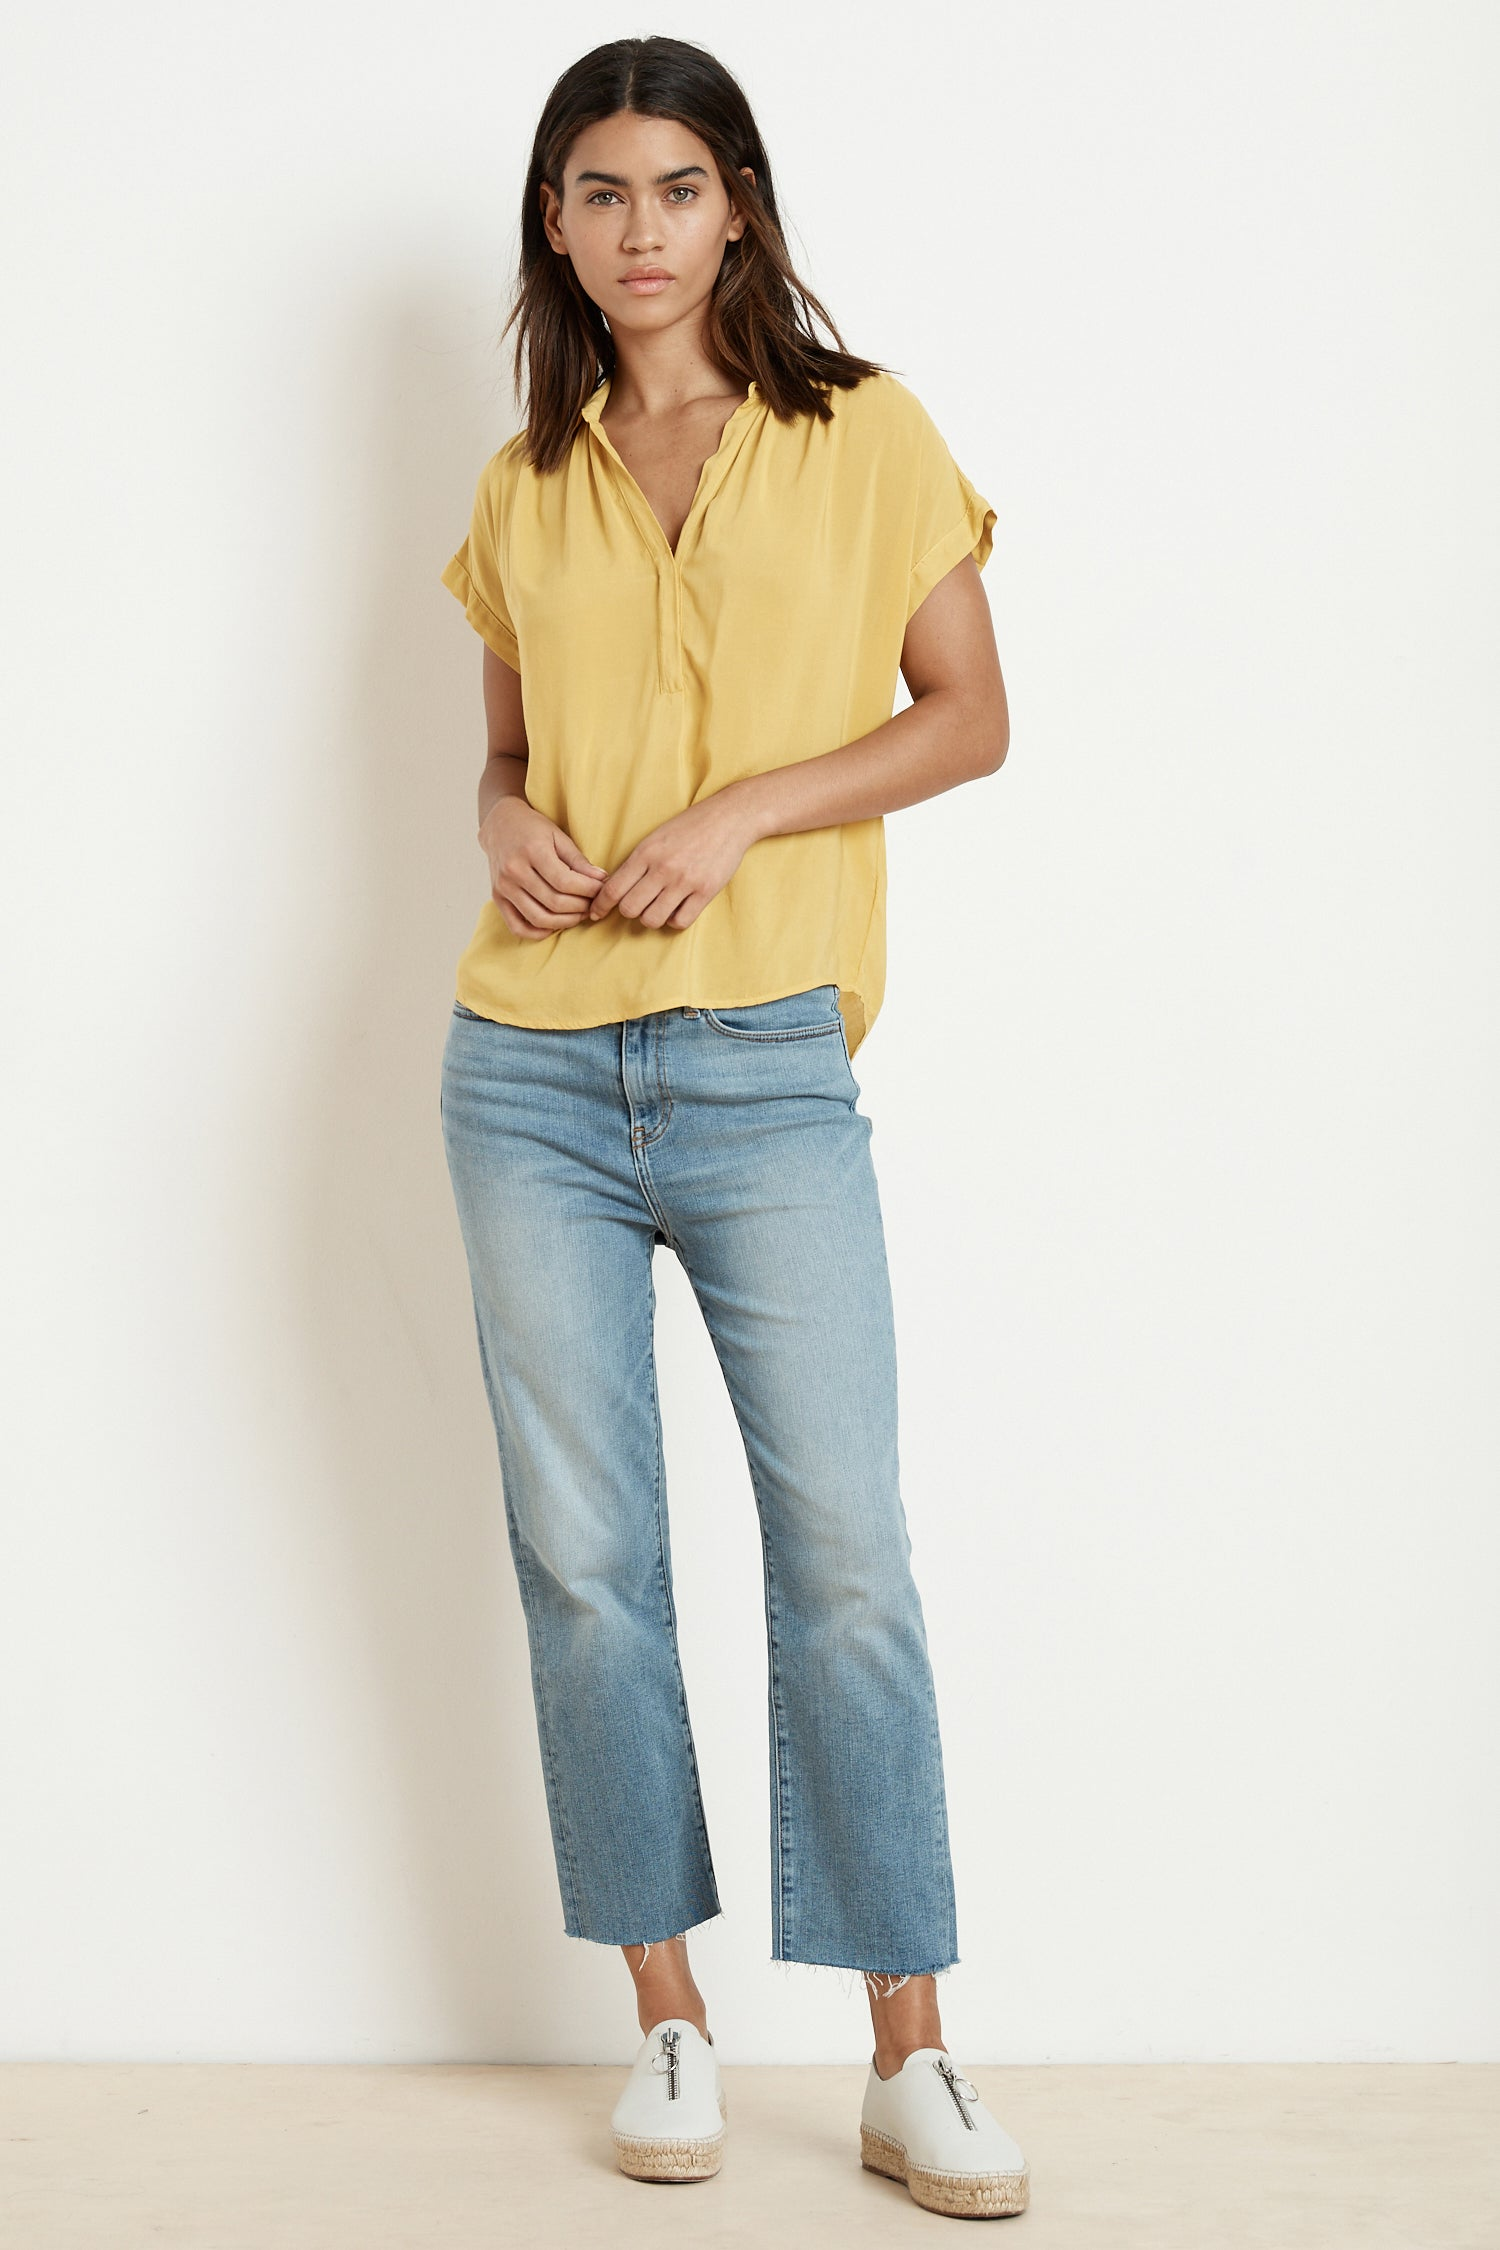 TAYLEN RAYON CHALLIS SHORT SLEEVE BLOUSE IN CANARY